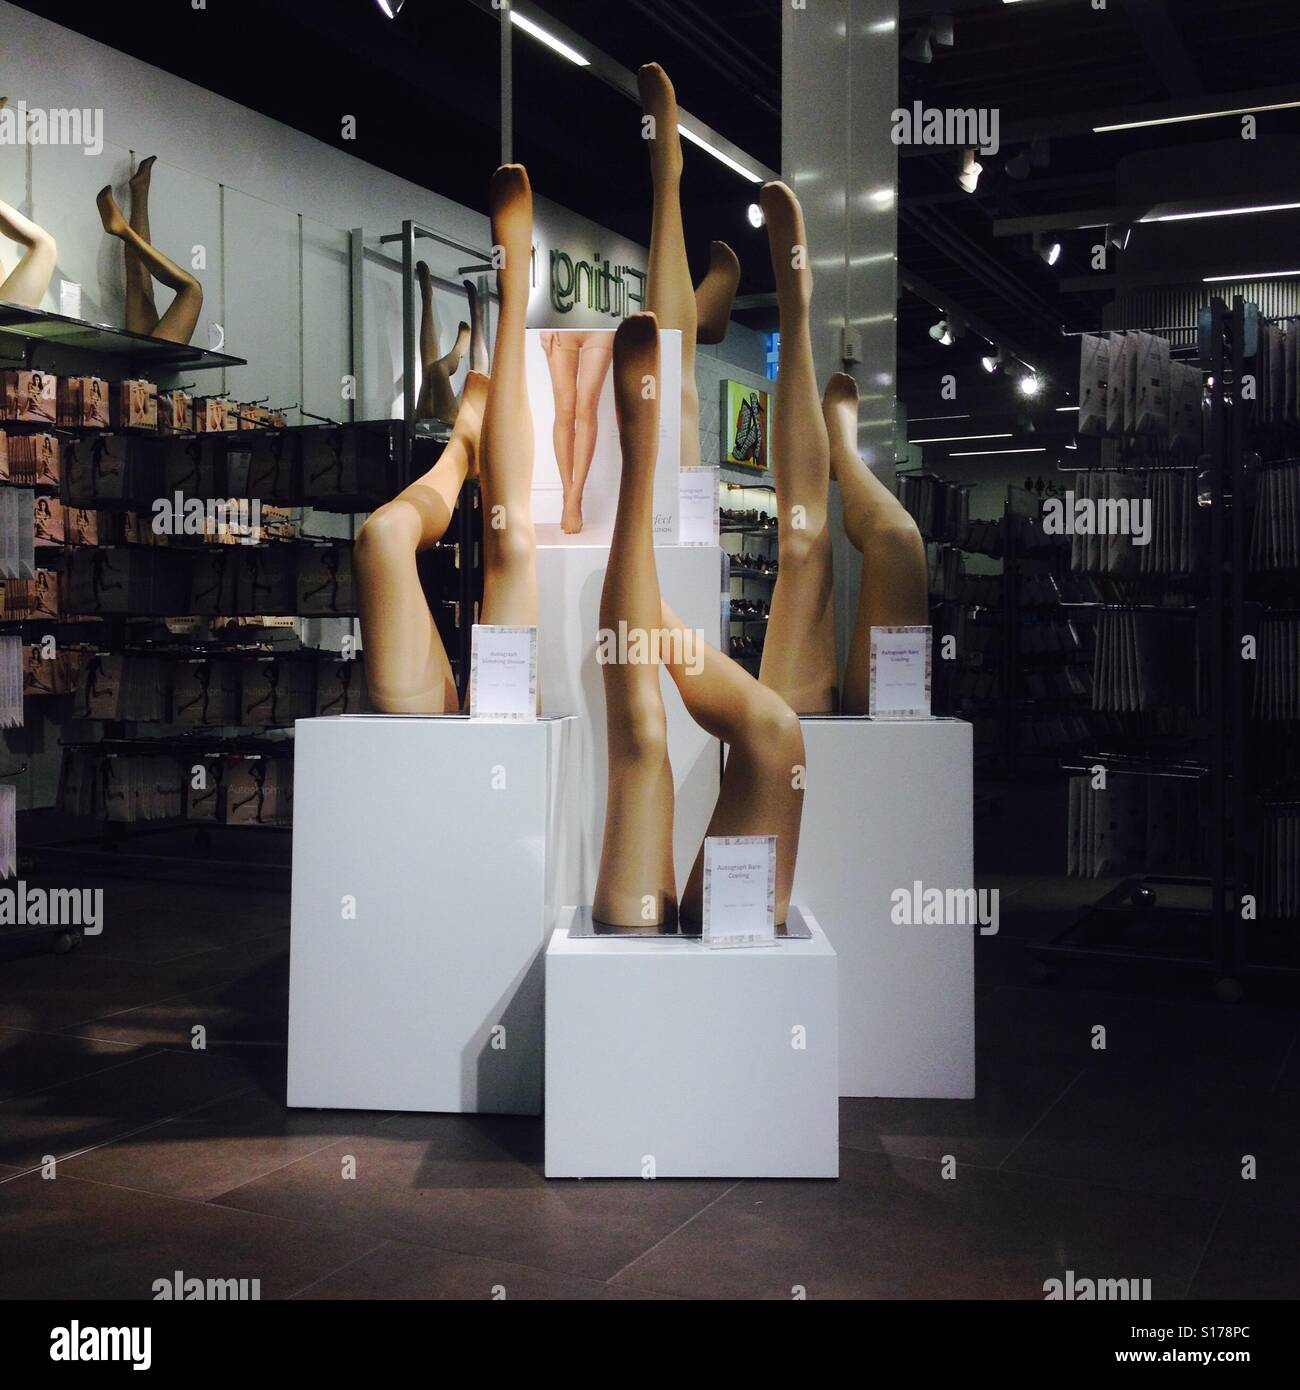 416c84699c8 Upside down Mannequin legs modelling tights in a shop - Stock Image